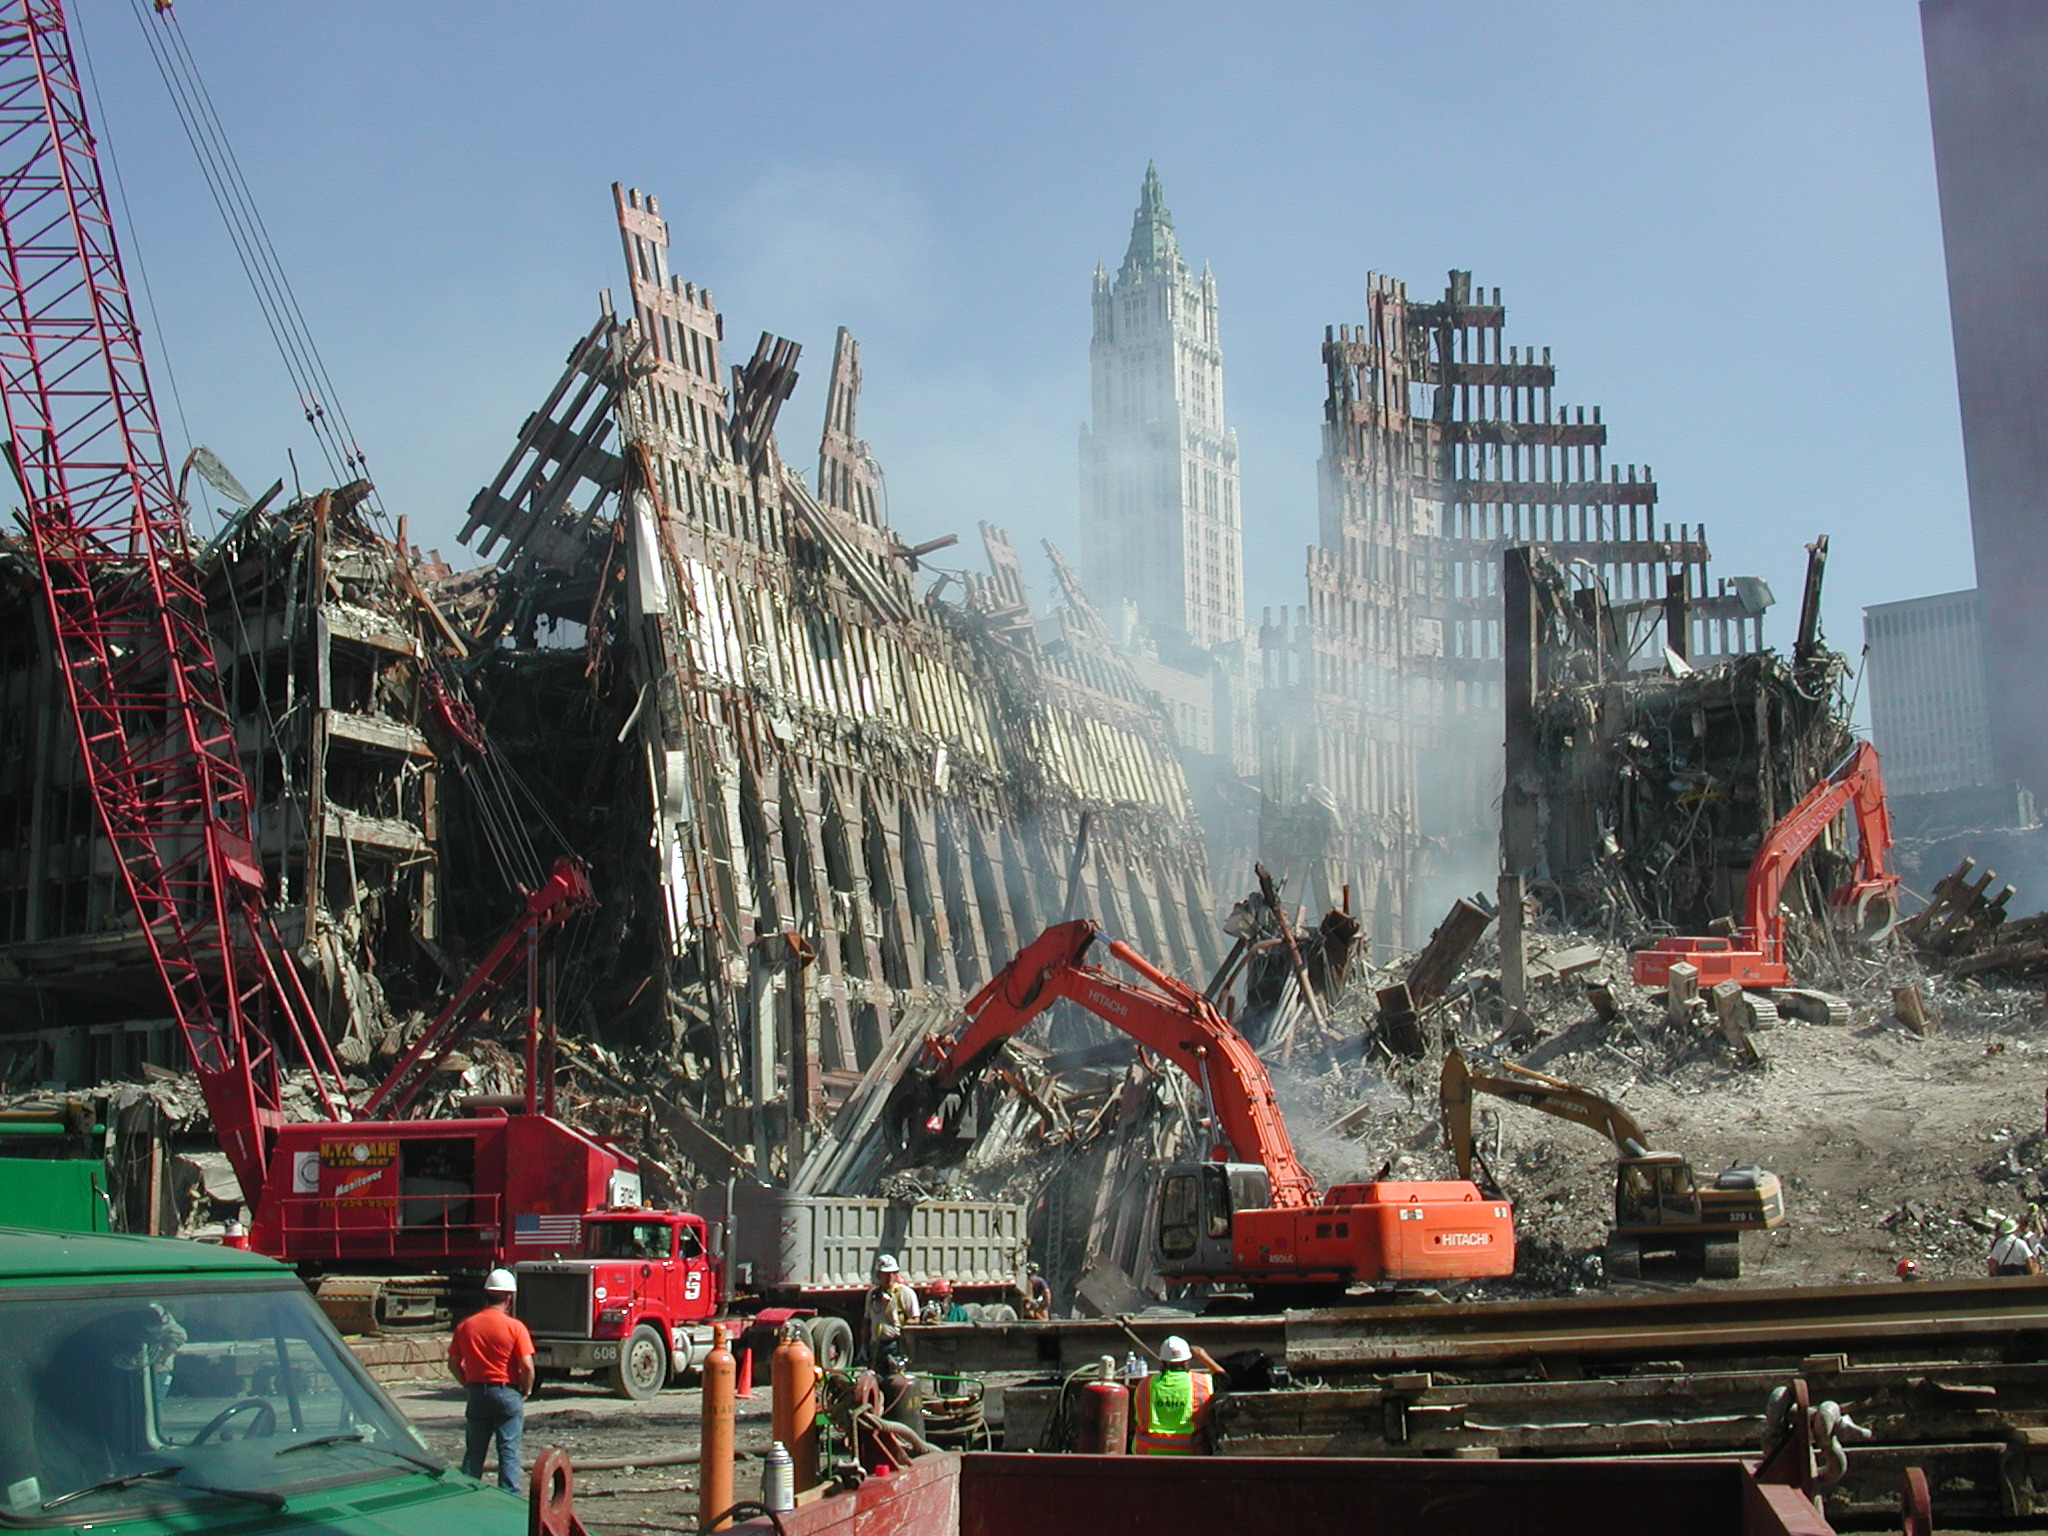 Comments On The Wtc Collapse